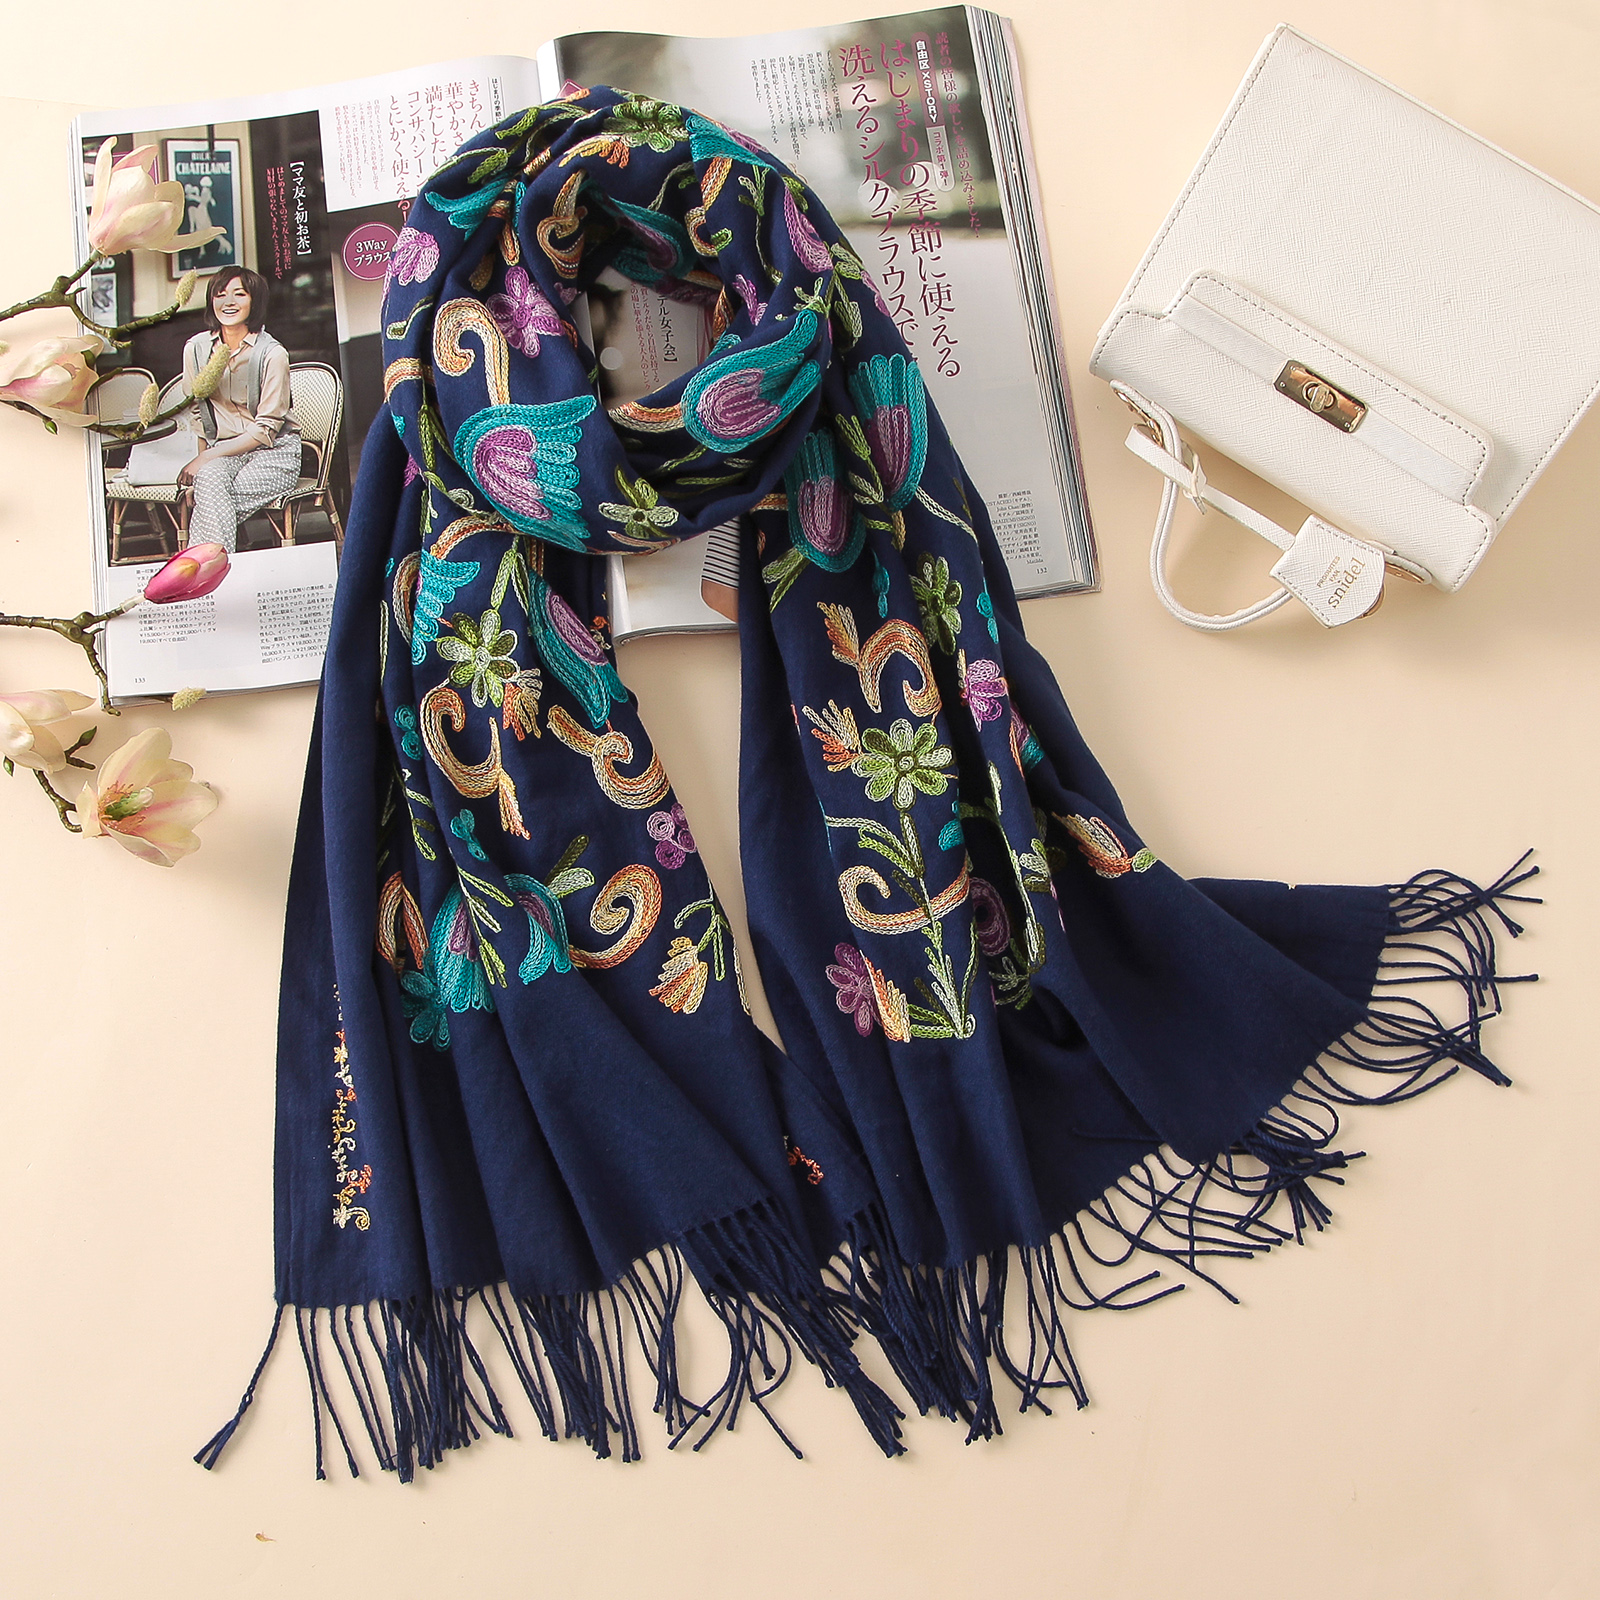 2019 designer quality embroidery cashmere scarves vintage winter women scarf long size shawls and wraps lady soft warmer foulard